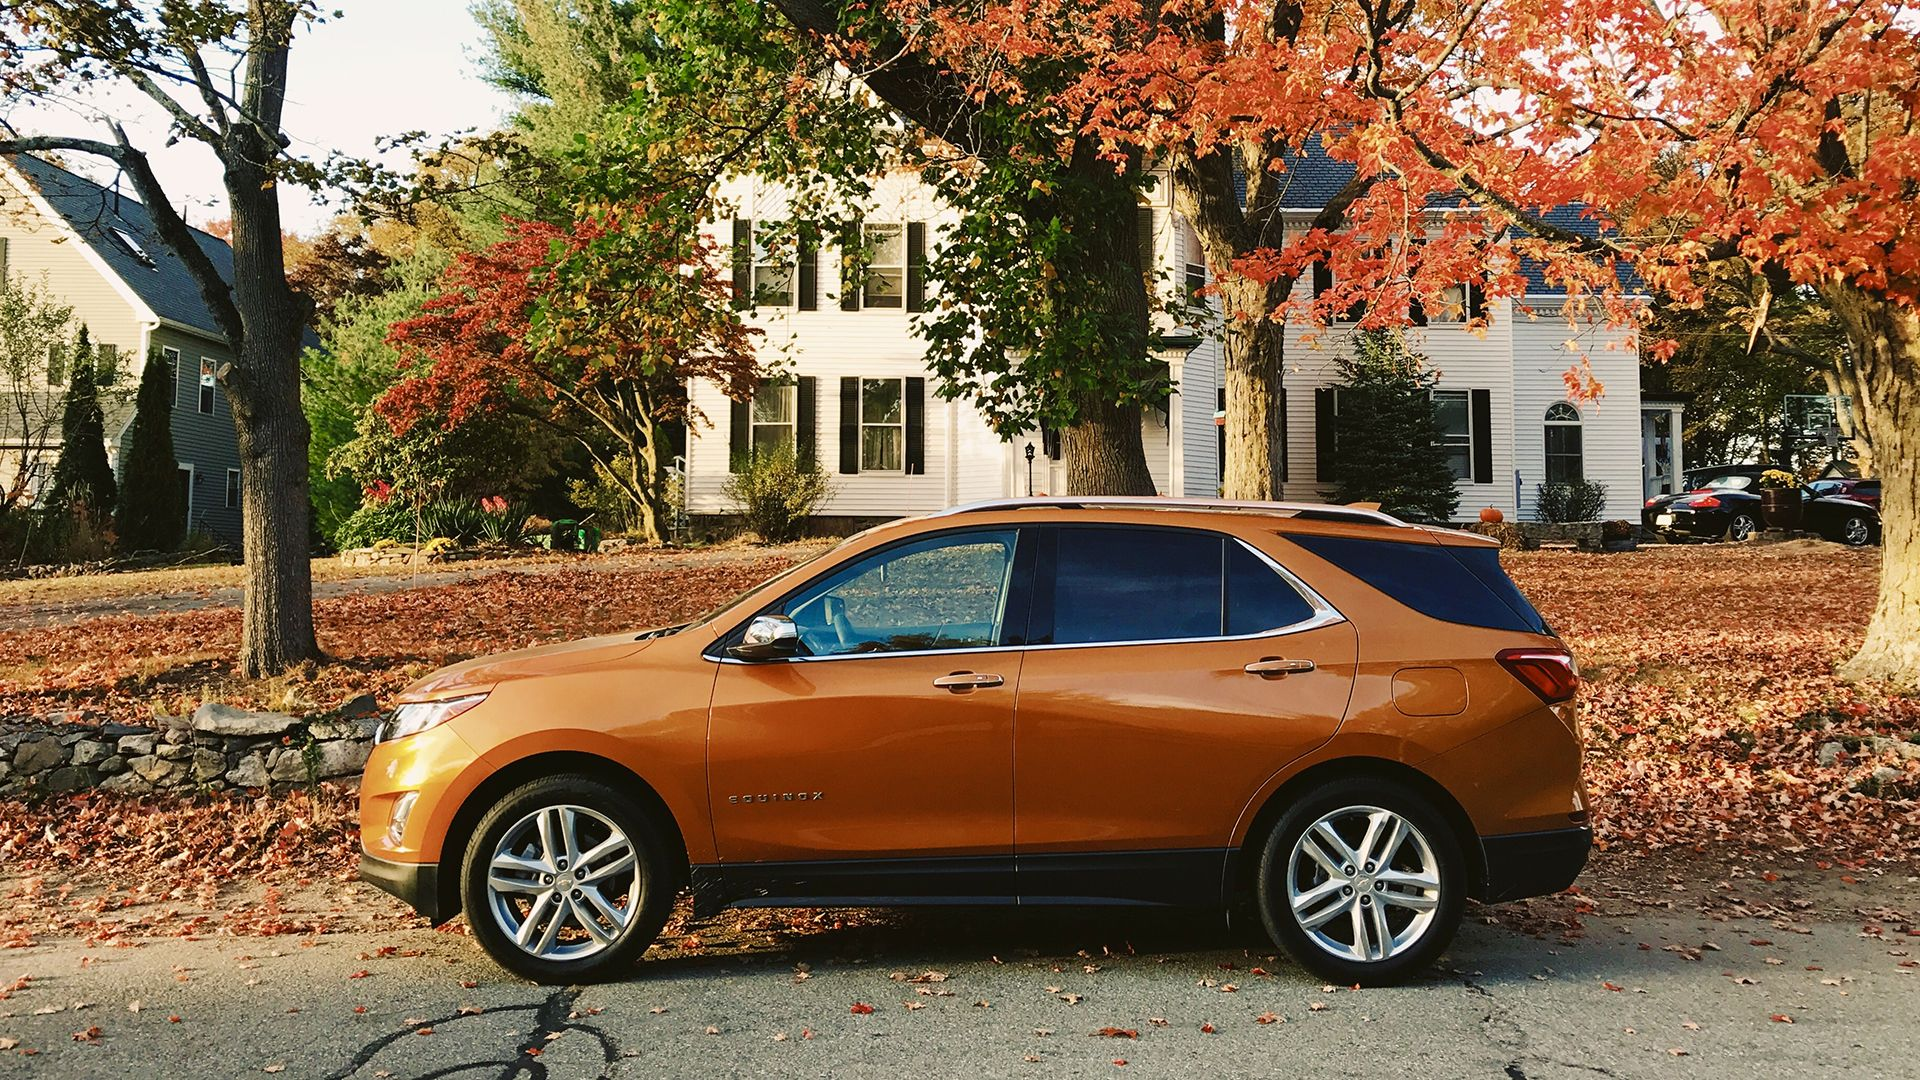 2018 Chevrolet Equinox Review The American Dream of pact